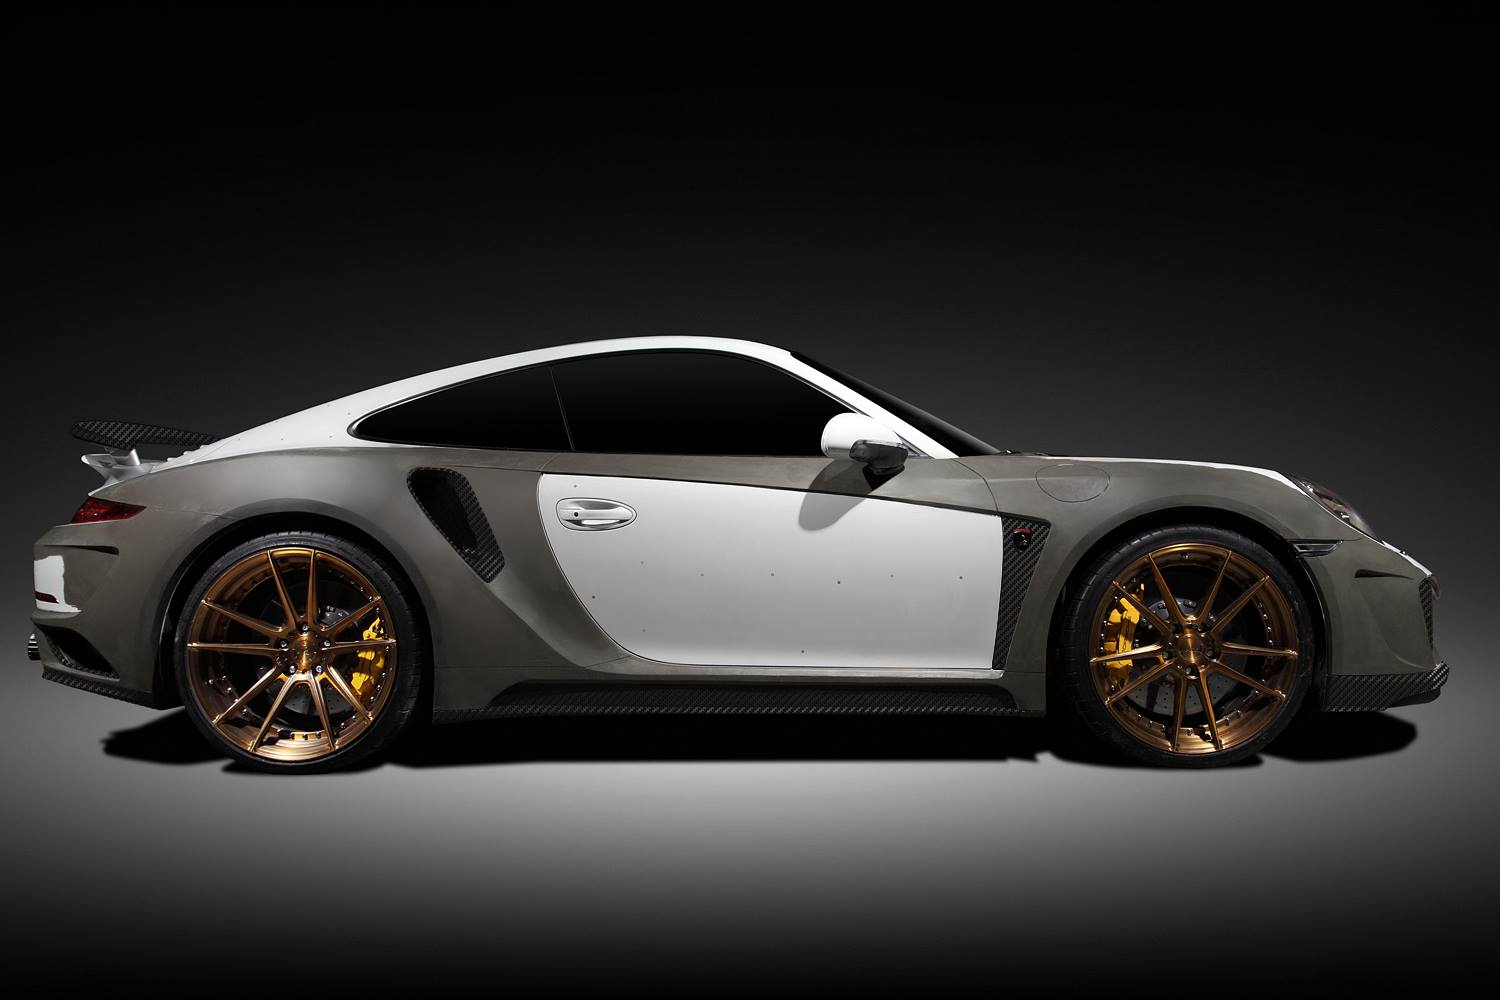 New Porsche 911 Turbo Singer Gtr Tuning Project Announced By Topcar Autoevolution